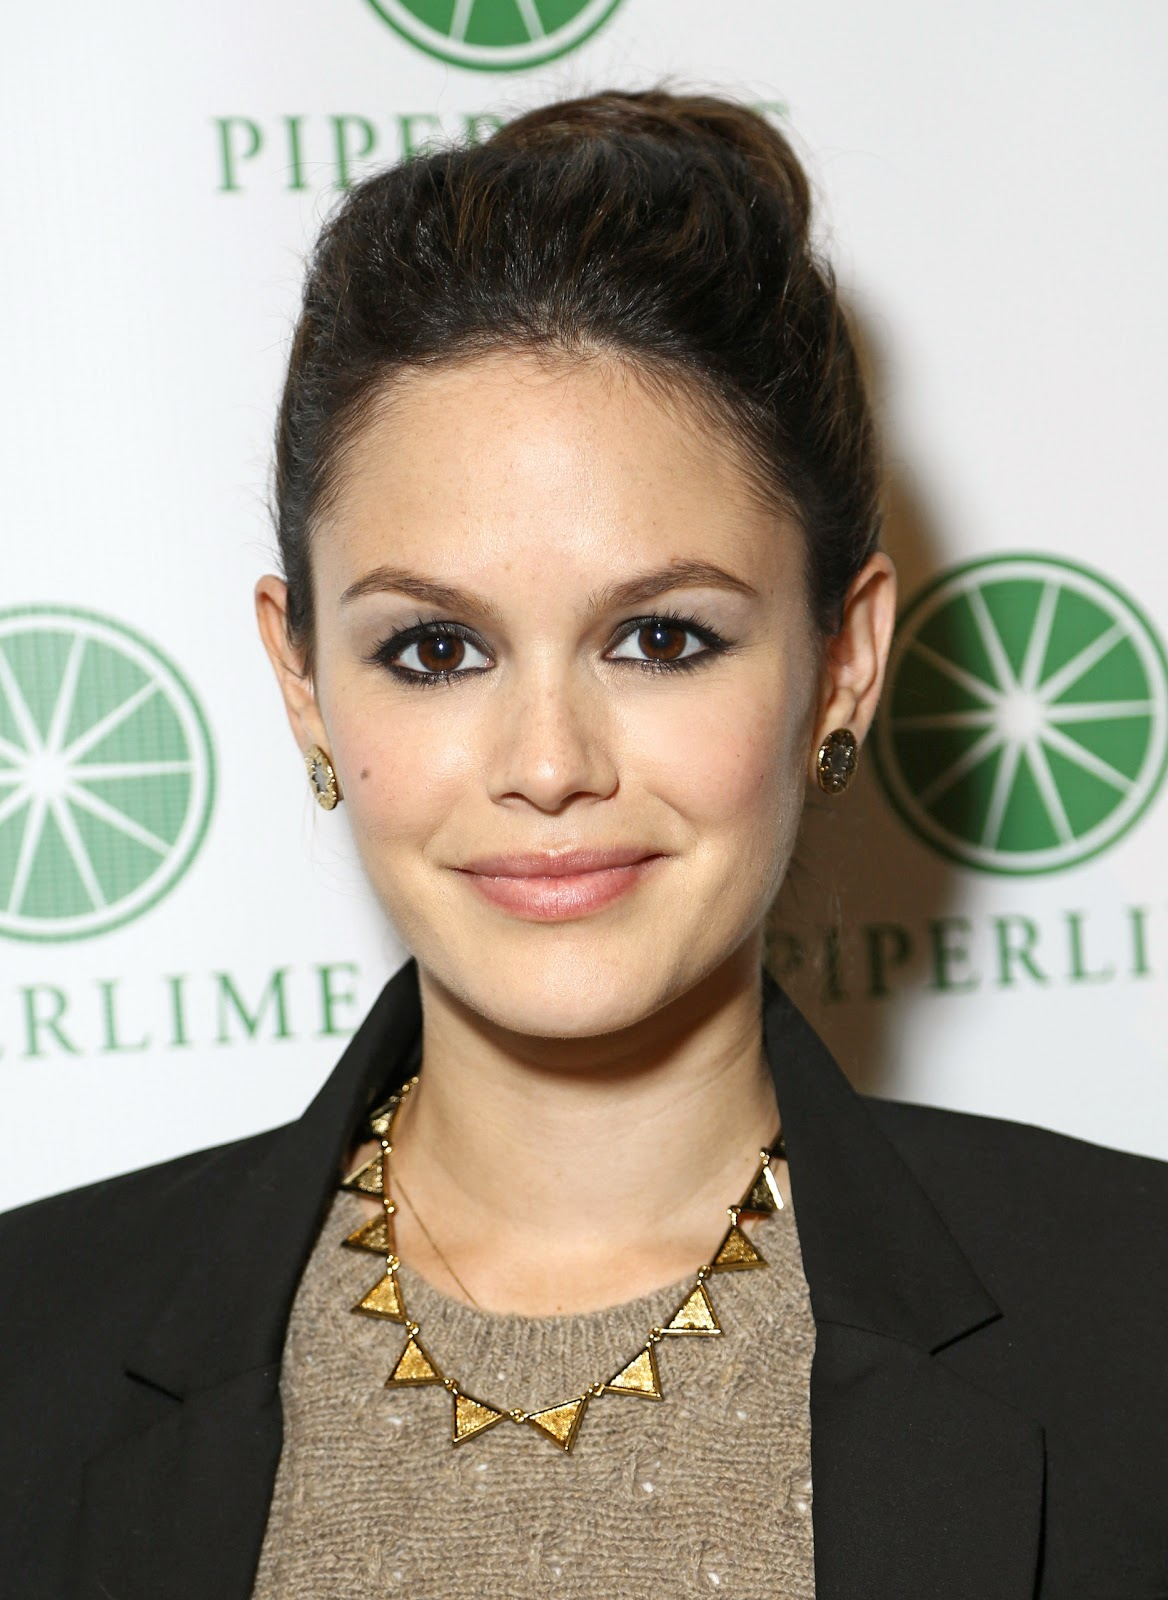 Two Days Ago At An Event In New York City Rachel Bilson Was Photographed Wearing A Pair Of House Harlow 1960 Tone Engraved Sunburst Stud Earrings And